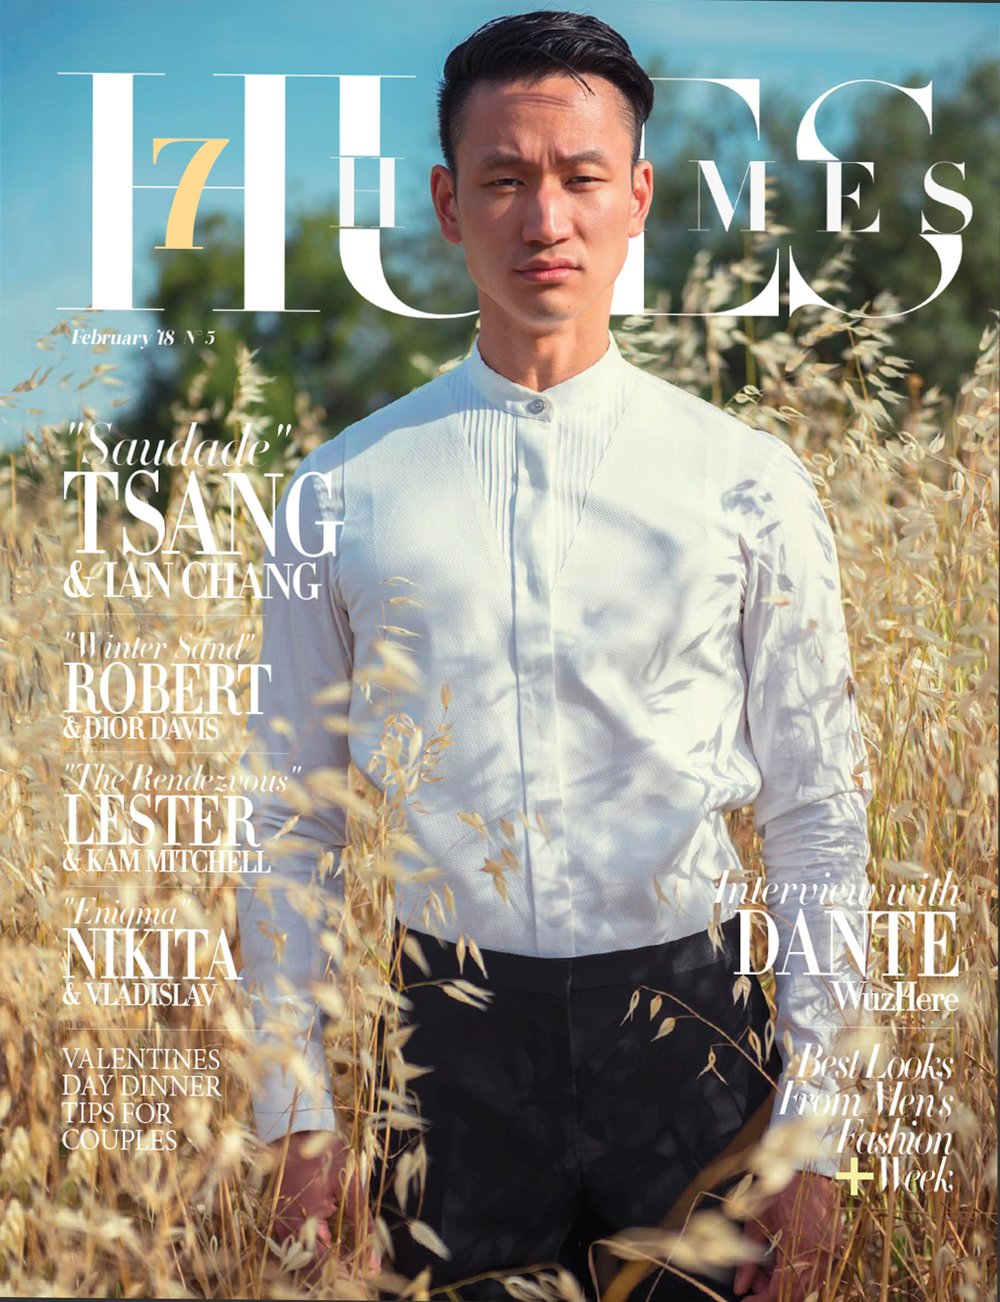 - Cover: 7Hues Hommes Magazine, February '18, No. 5